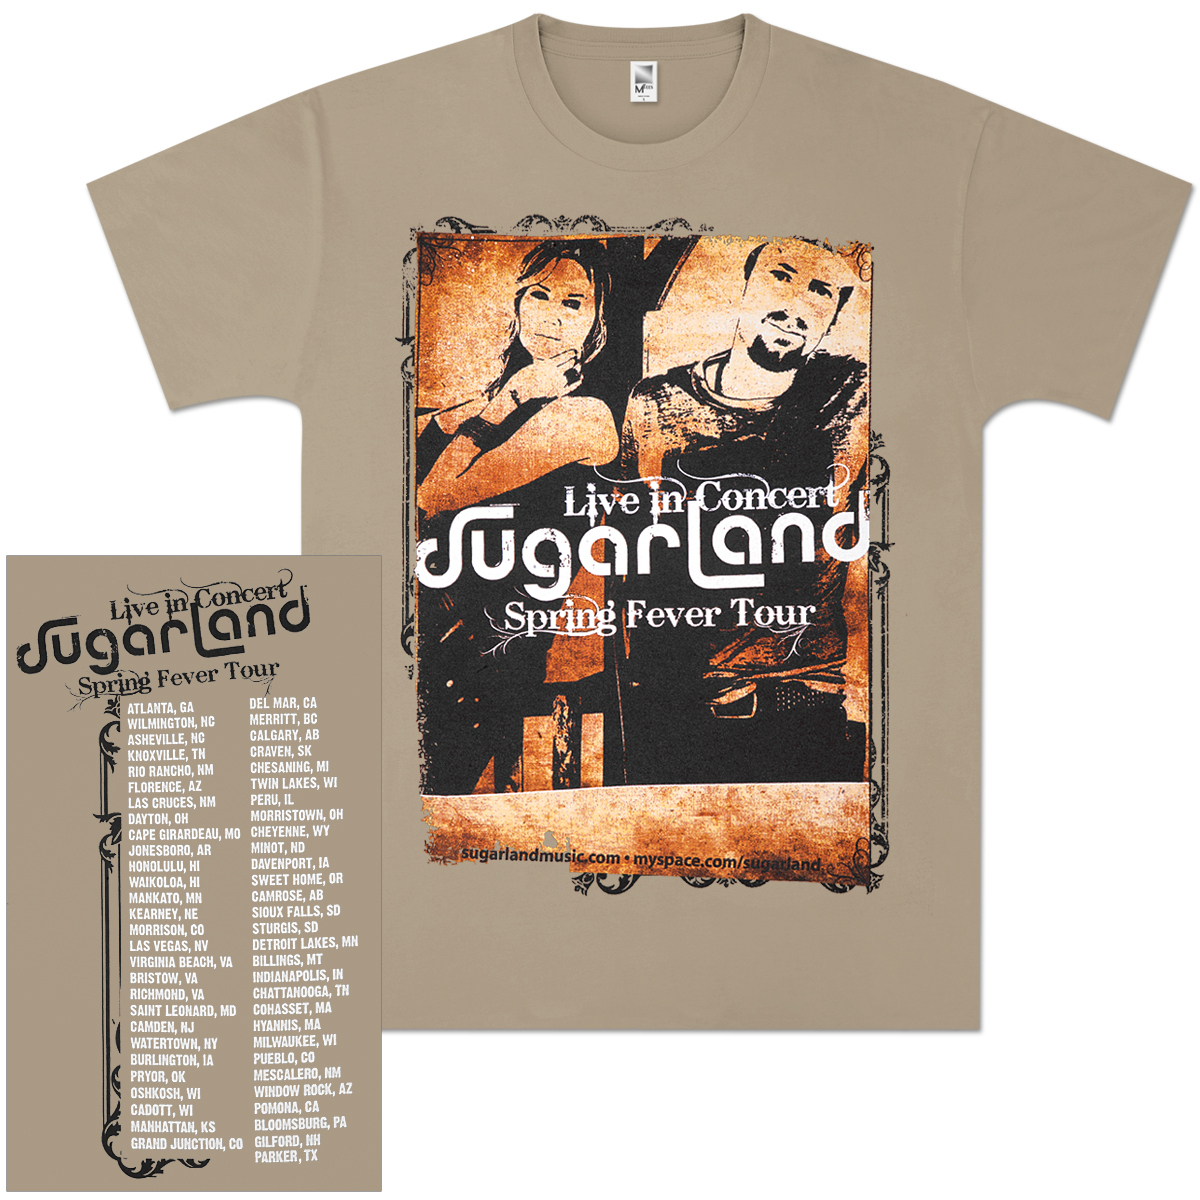 Sugarland Spring Fever Tour T-Shirt